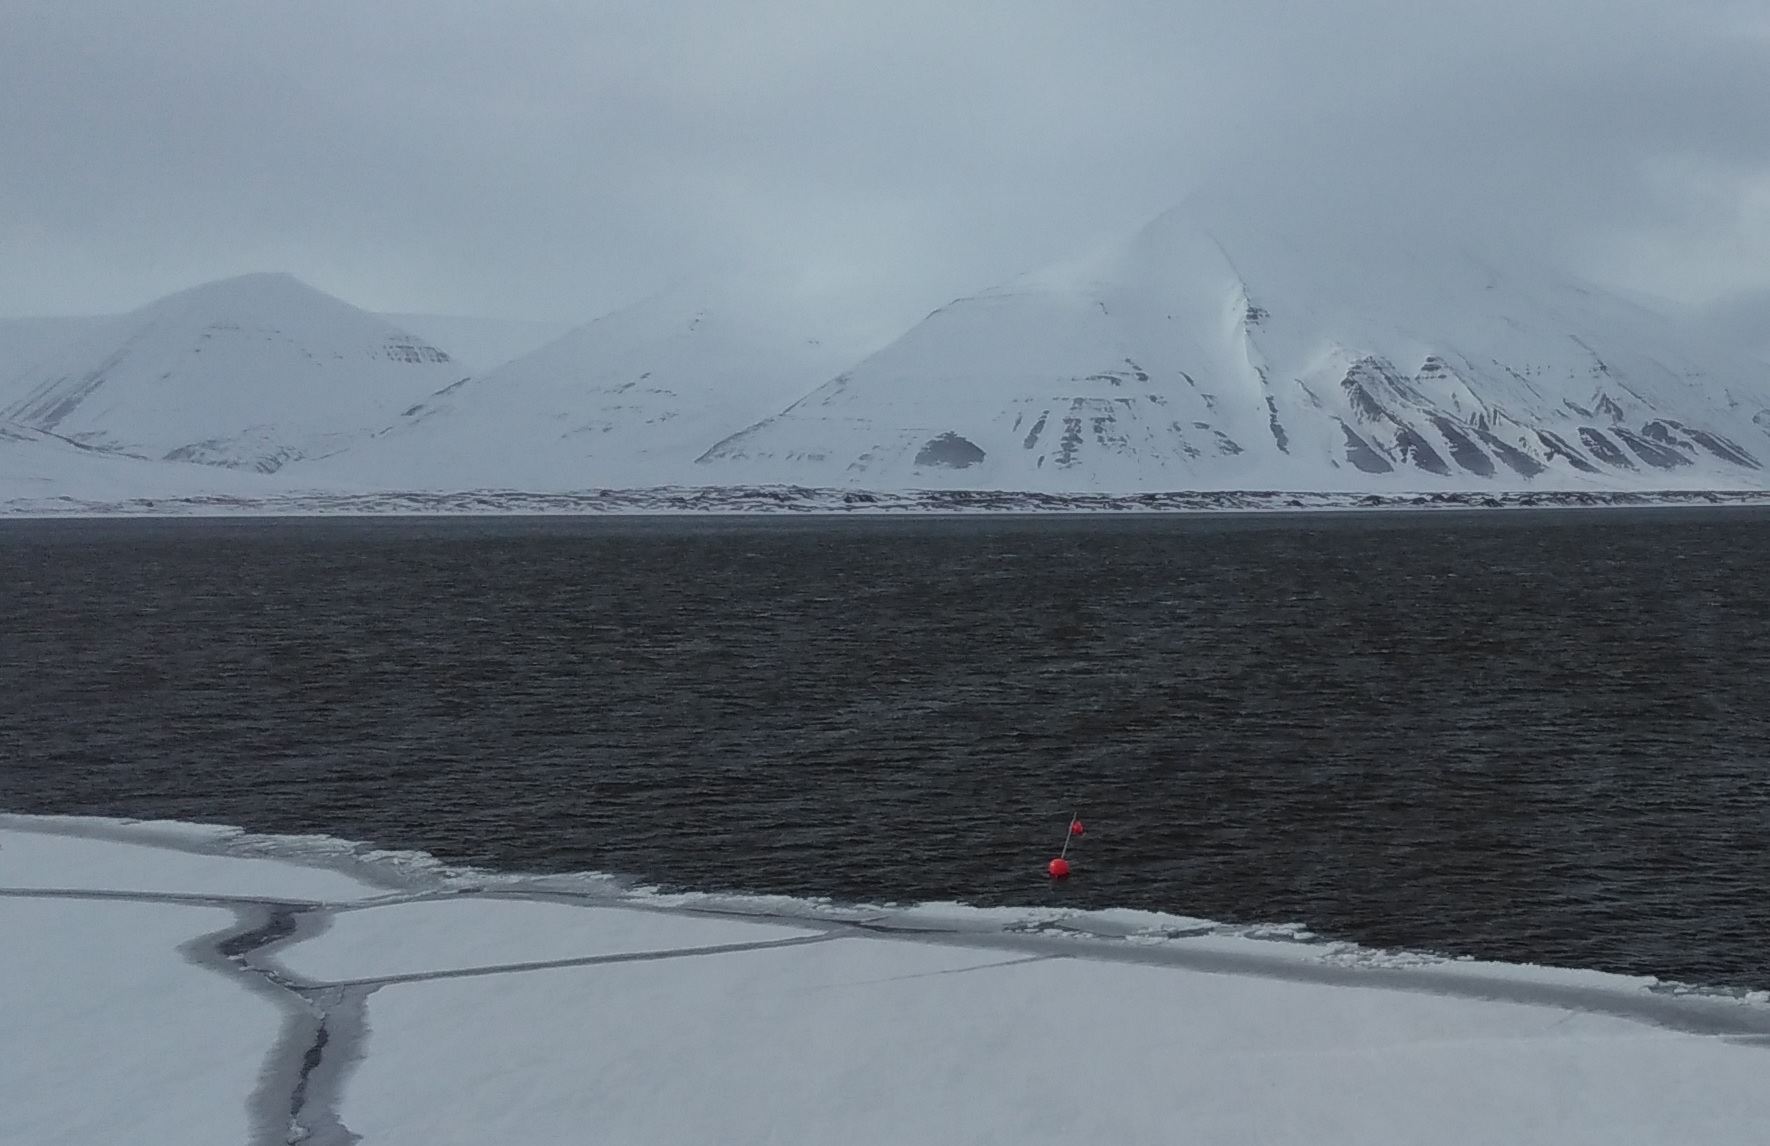 Sediment trap array threatened by the ice floe (picture by Ingrid Wiedmann)